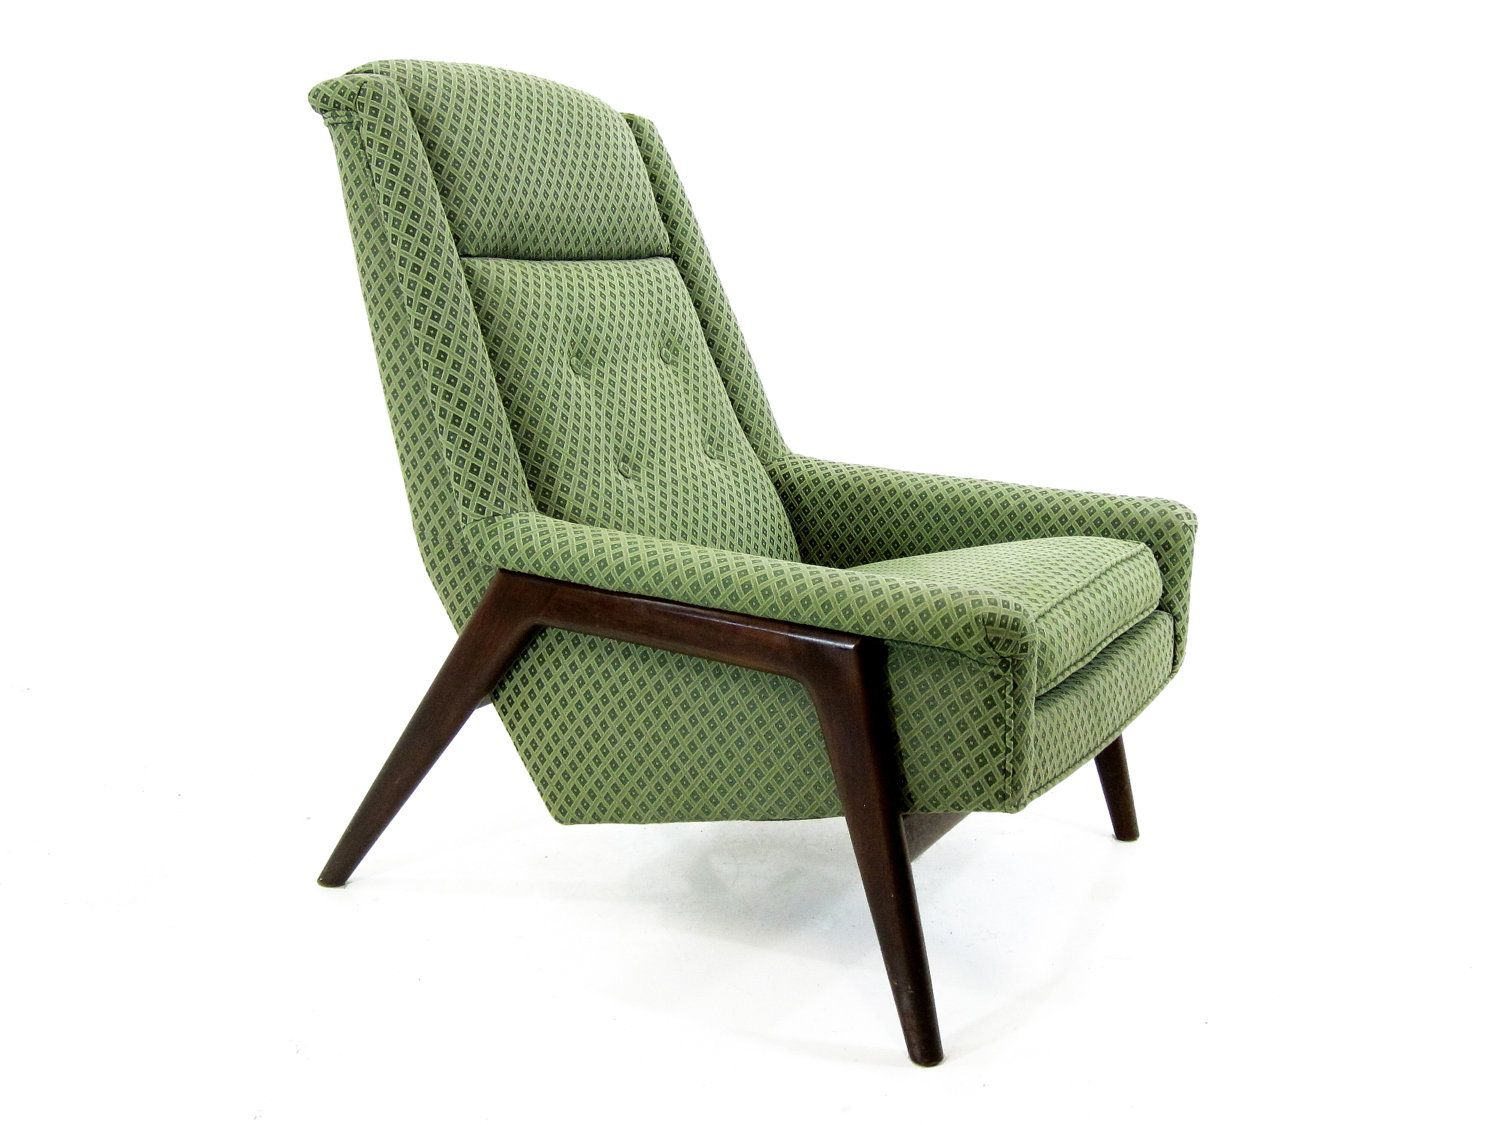 danish modern lounge chair, green on walnut - black friday etsy